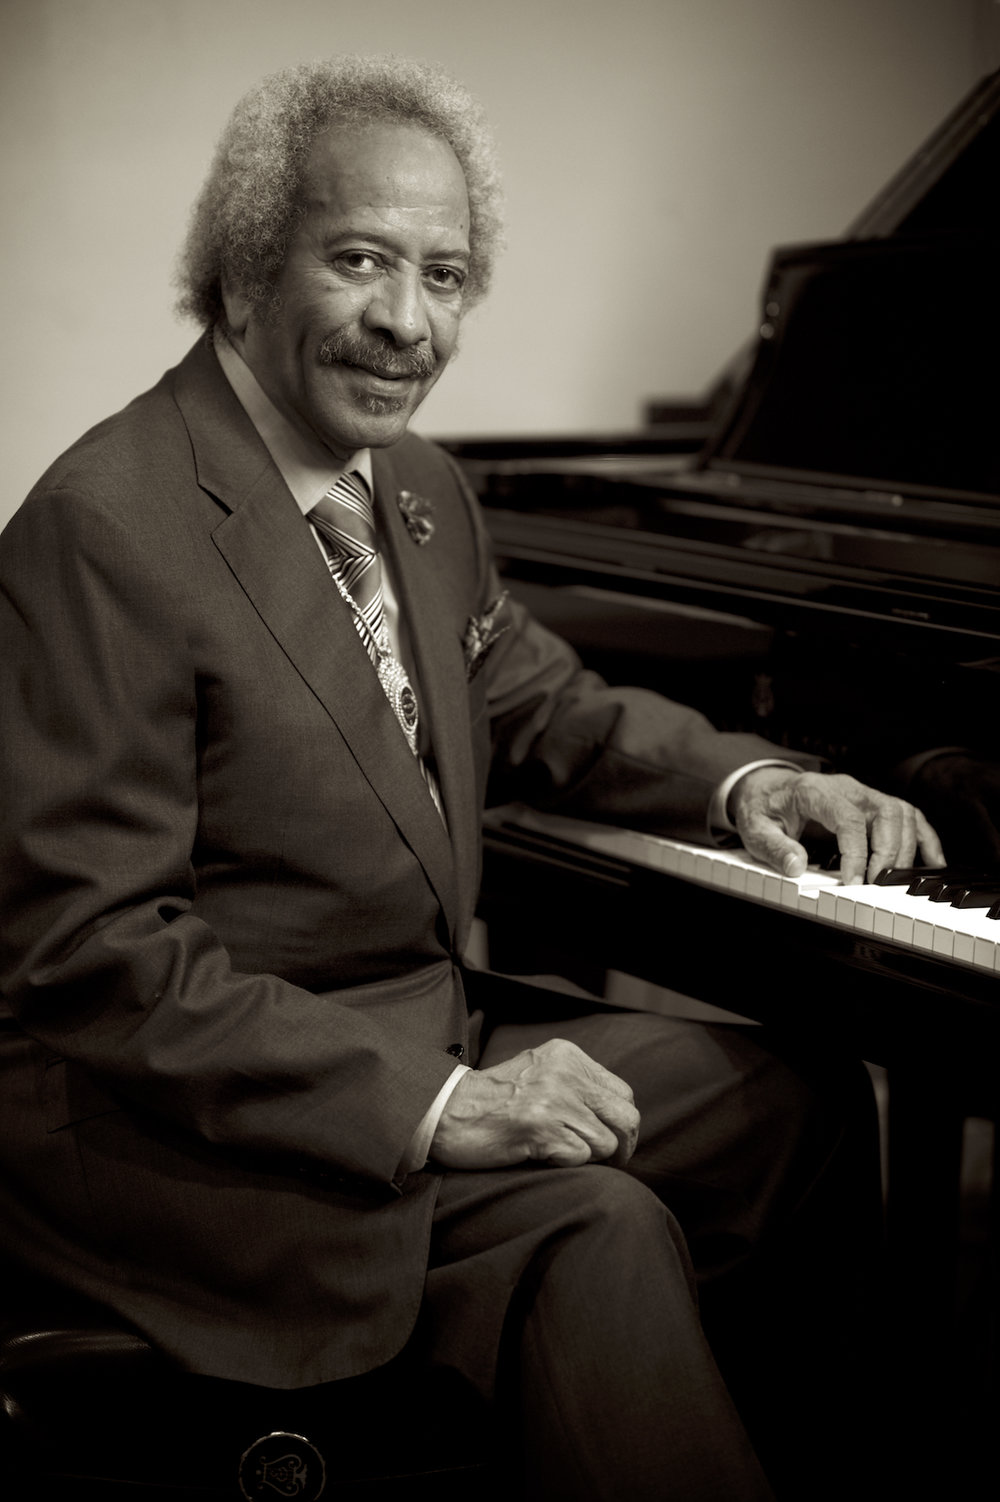 Allen Toussaint, photographed by New Orleans based photographer, Marc Pagani